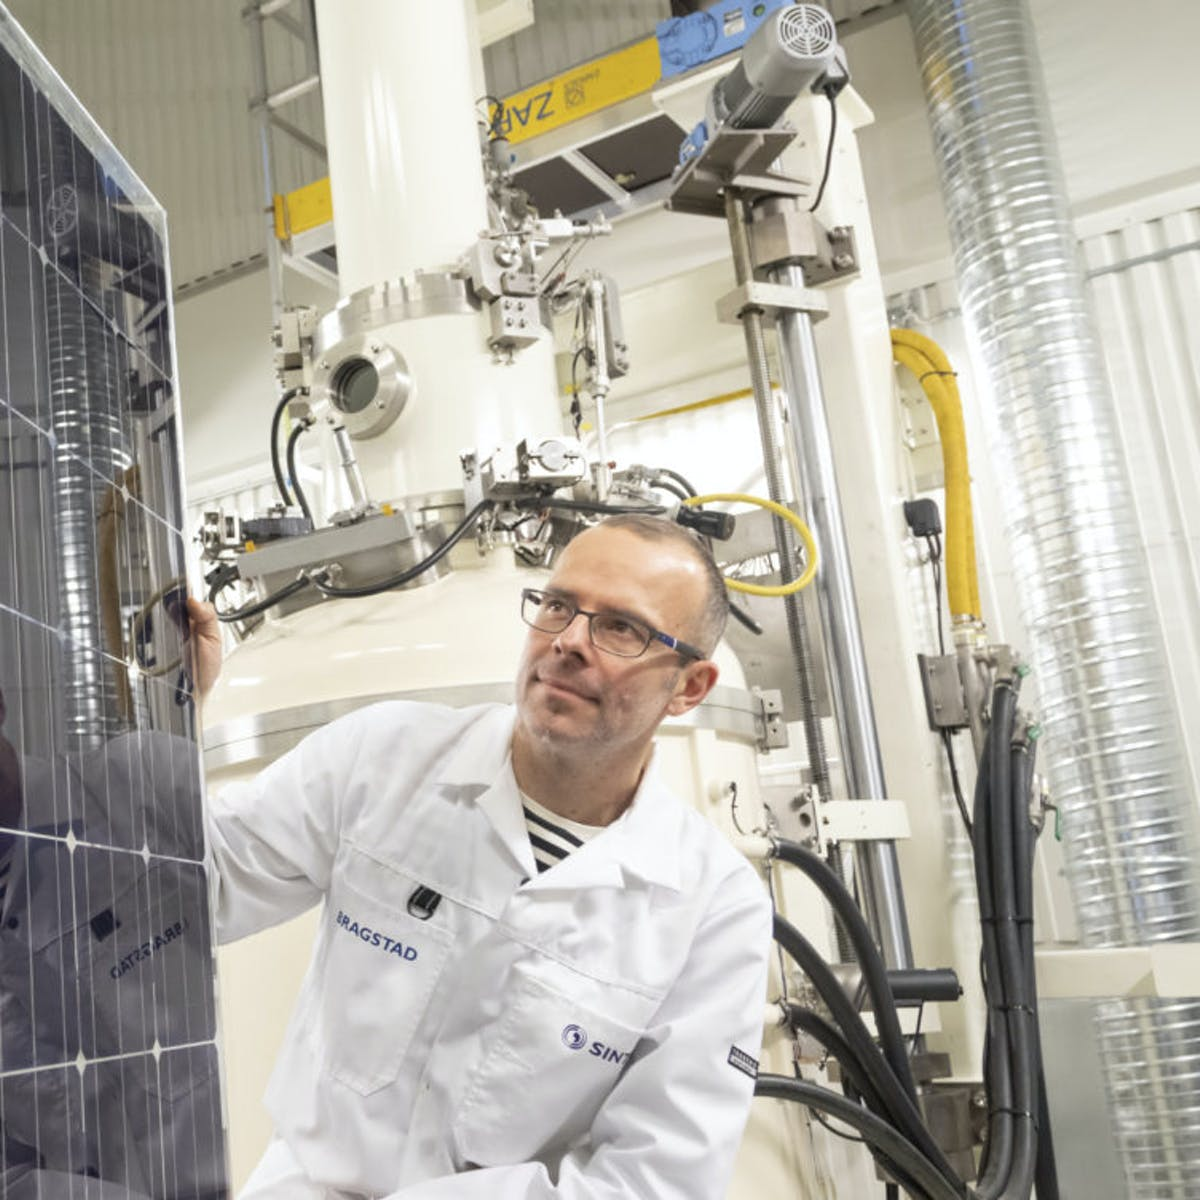 Solar Energy: These Heat-Storing Panels Cool the Cells to Boost Output